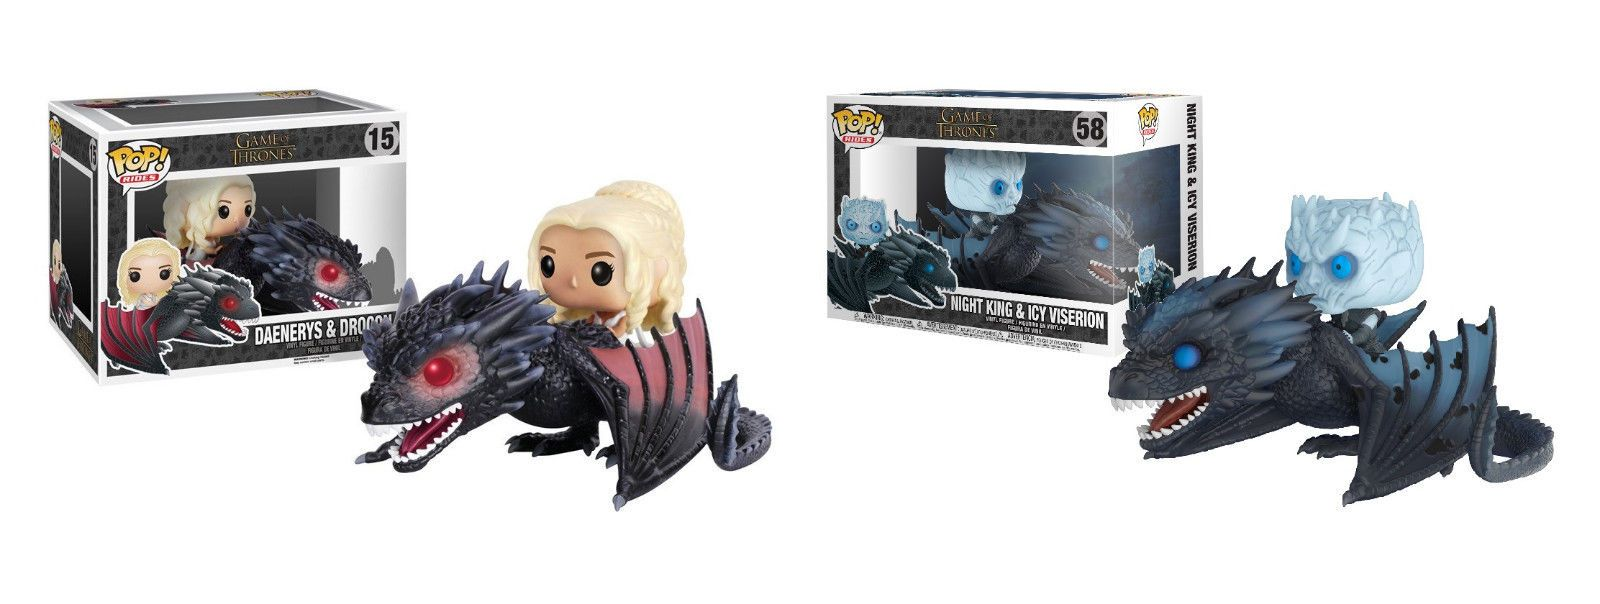 Novelty & Special Use Glorious Funko Pop Game Of Thrones Daenerys Stormborn Jon Snow Night King 10cm Action Figure Collection Pvc Model Toy For Christmas Gift